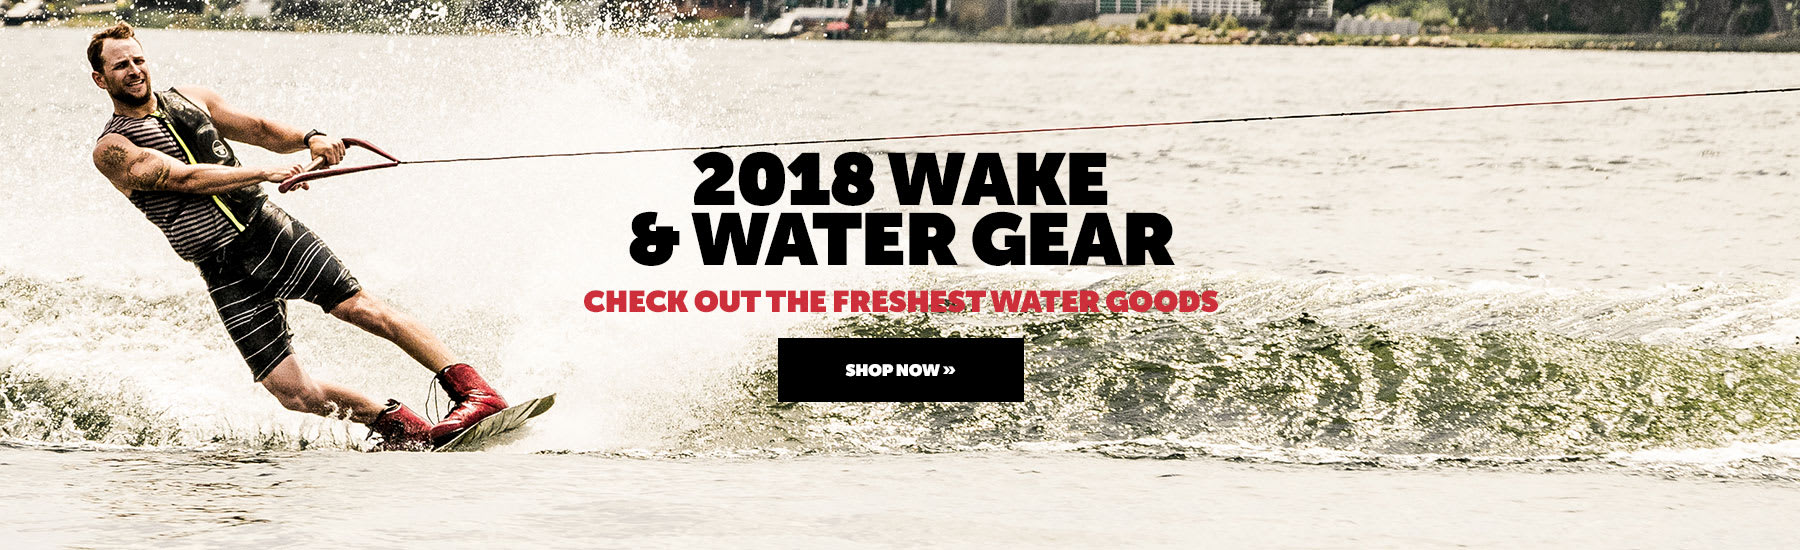 2018 Wake & Water Gear